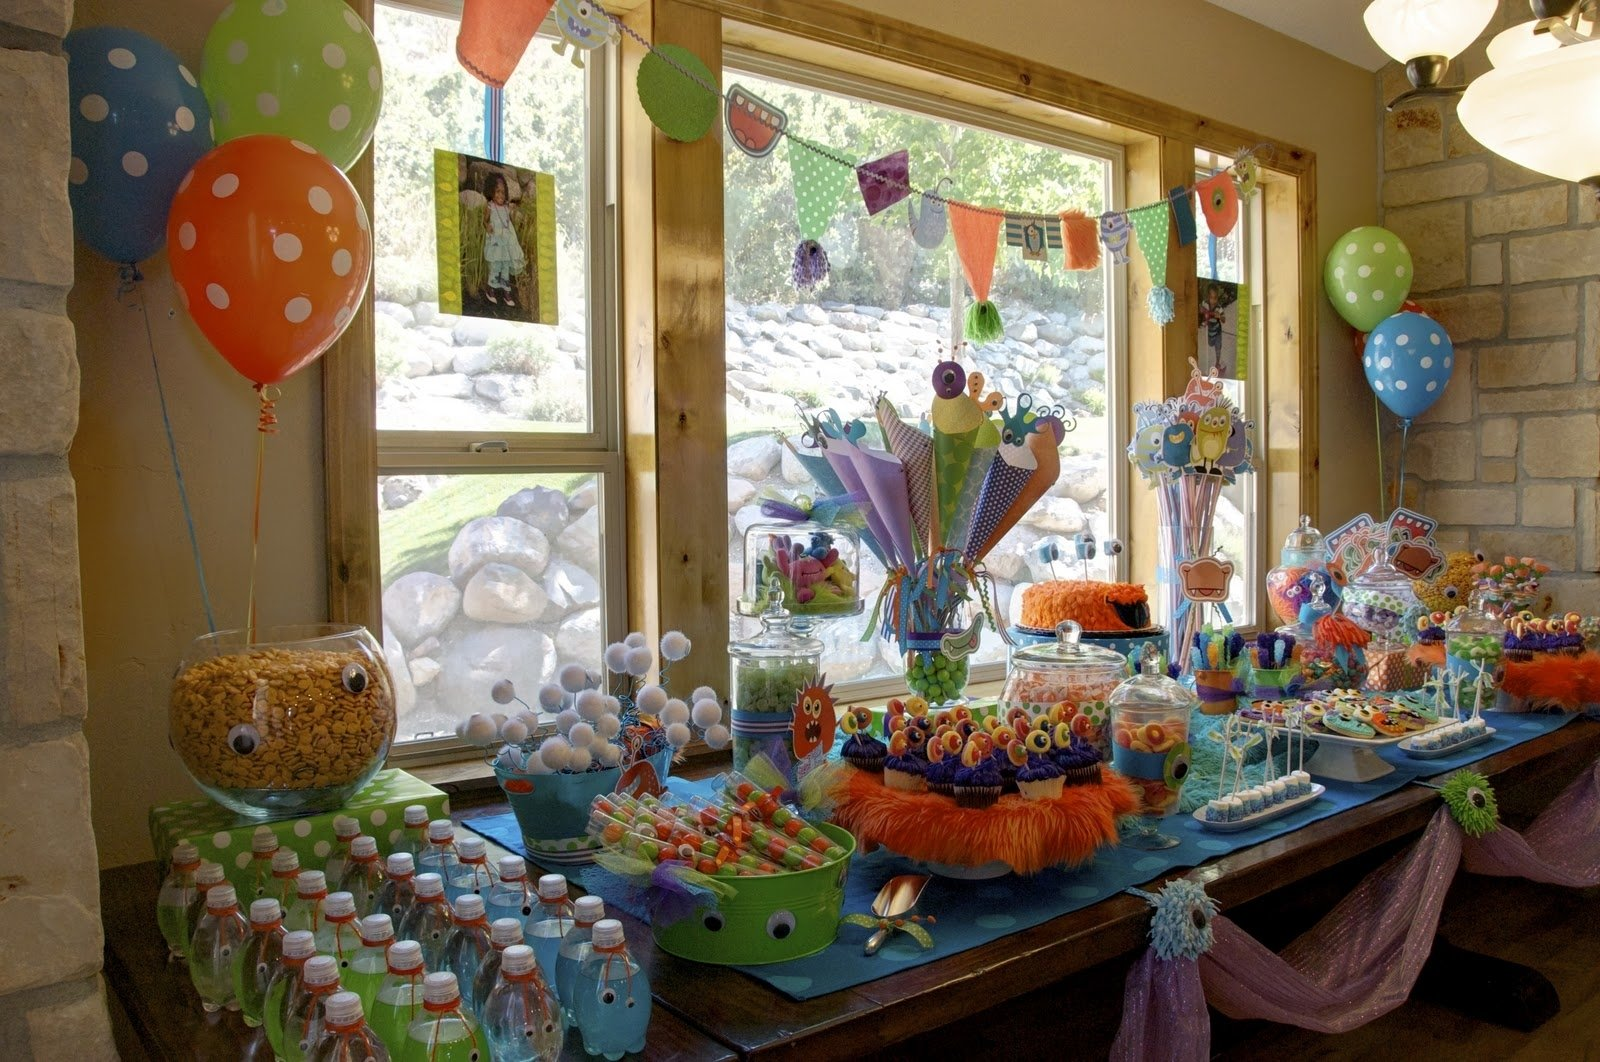 10 Most Recommended Birthday Party Ideas For 2 Year Old Boy my friends birthday is in the winter and she wanteaes cause shes 14